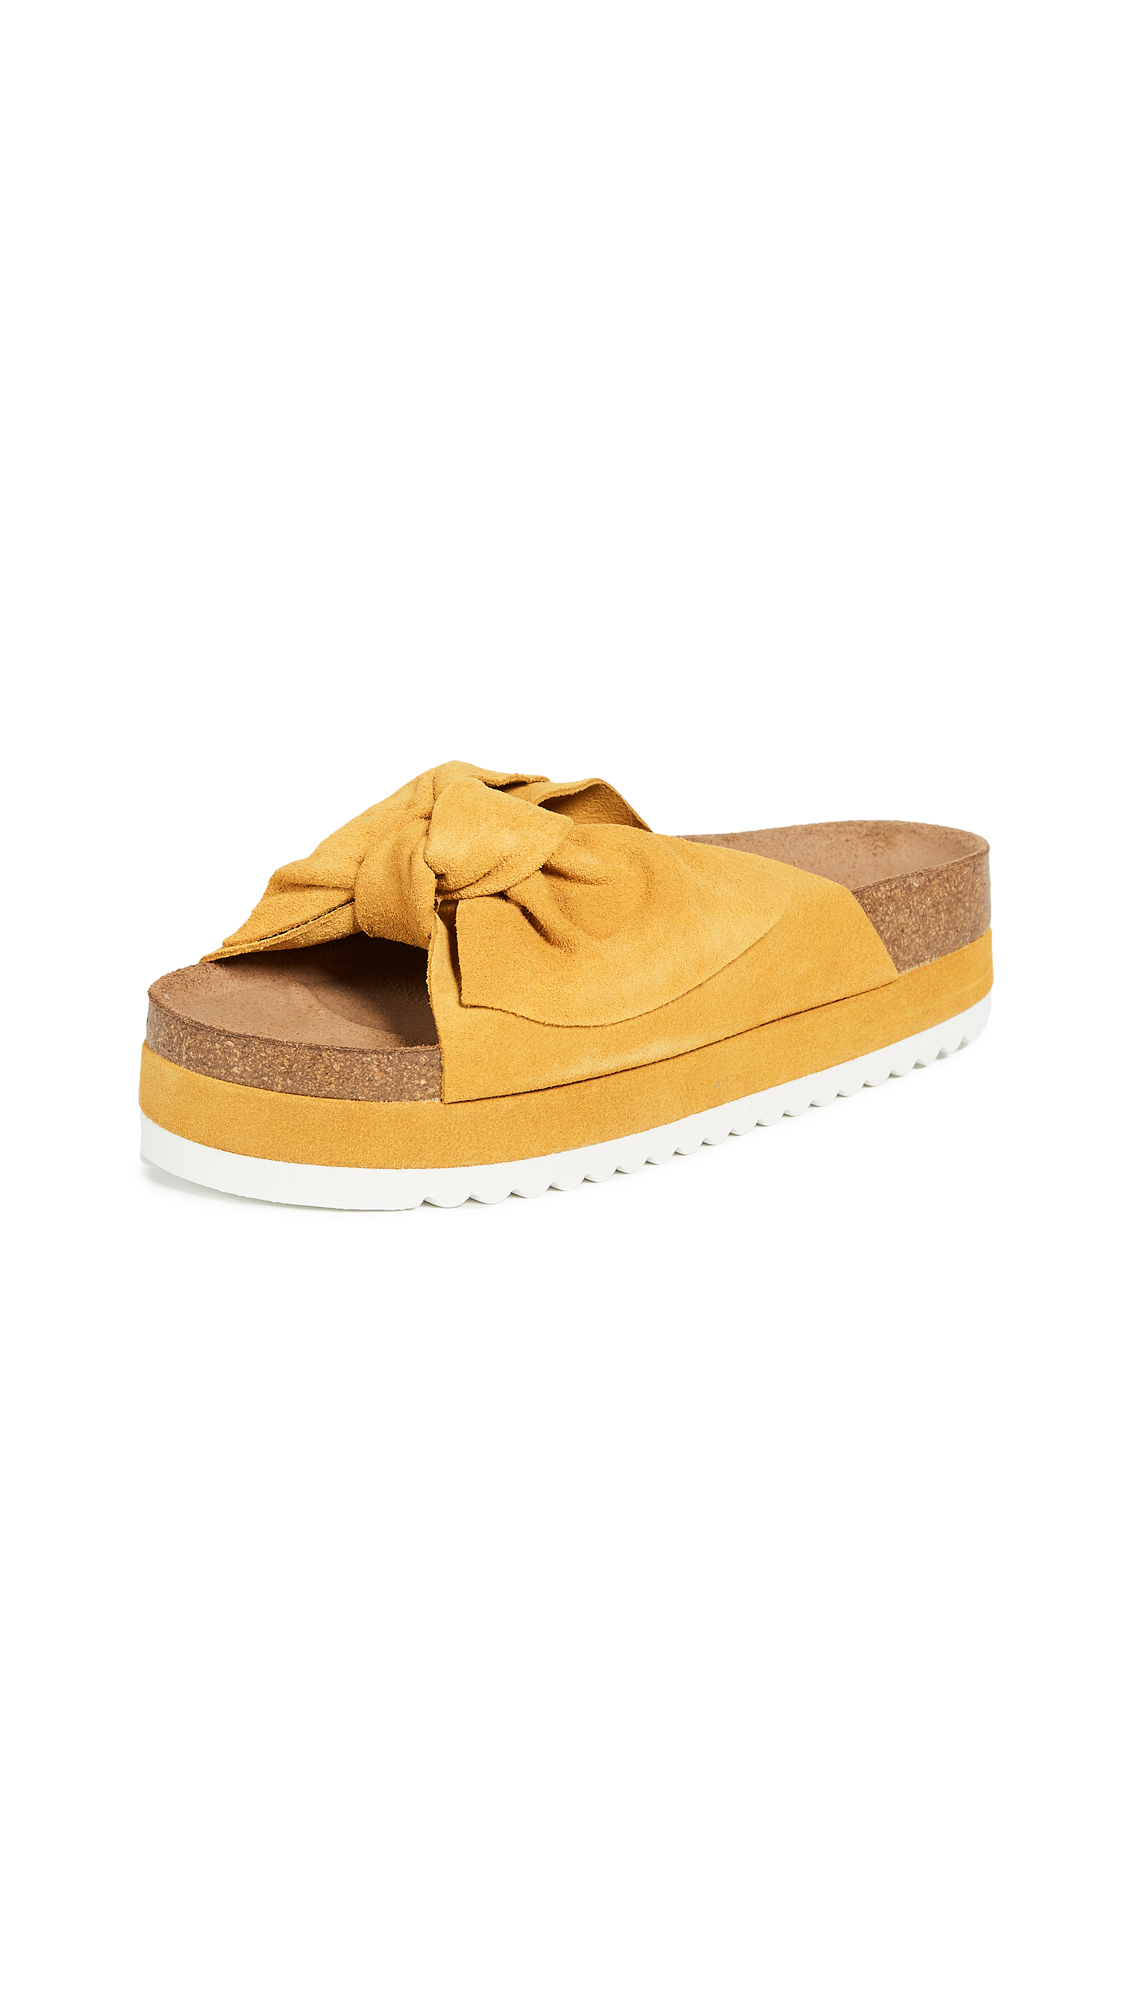 Jeffrey Campbell Rotuma Bow Slides - Mustard